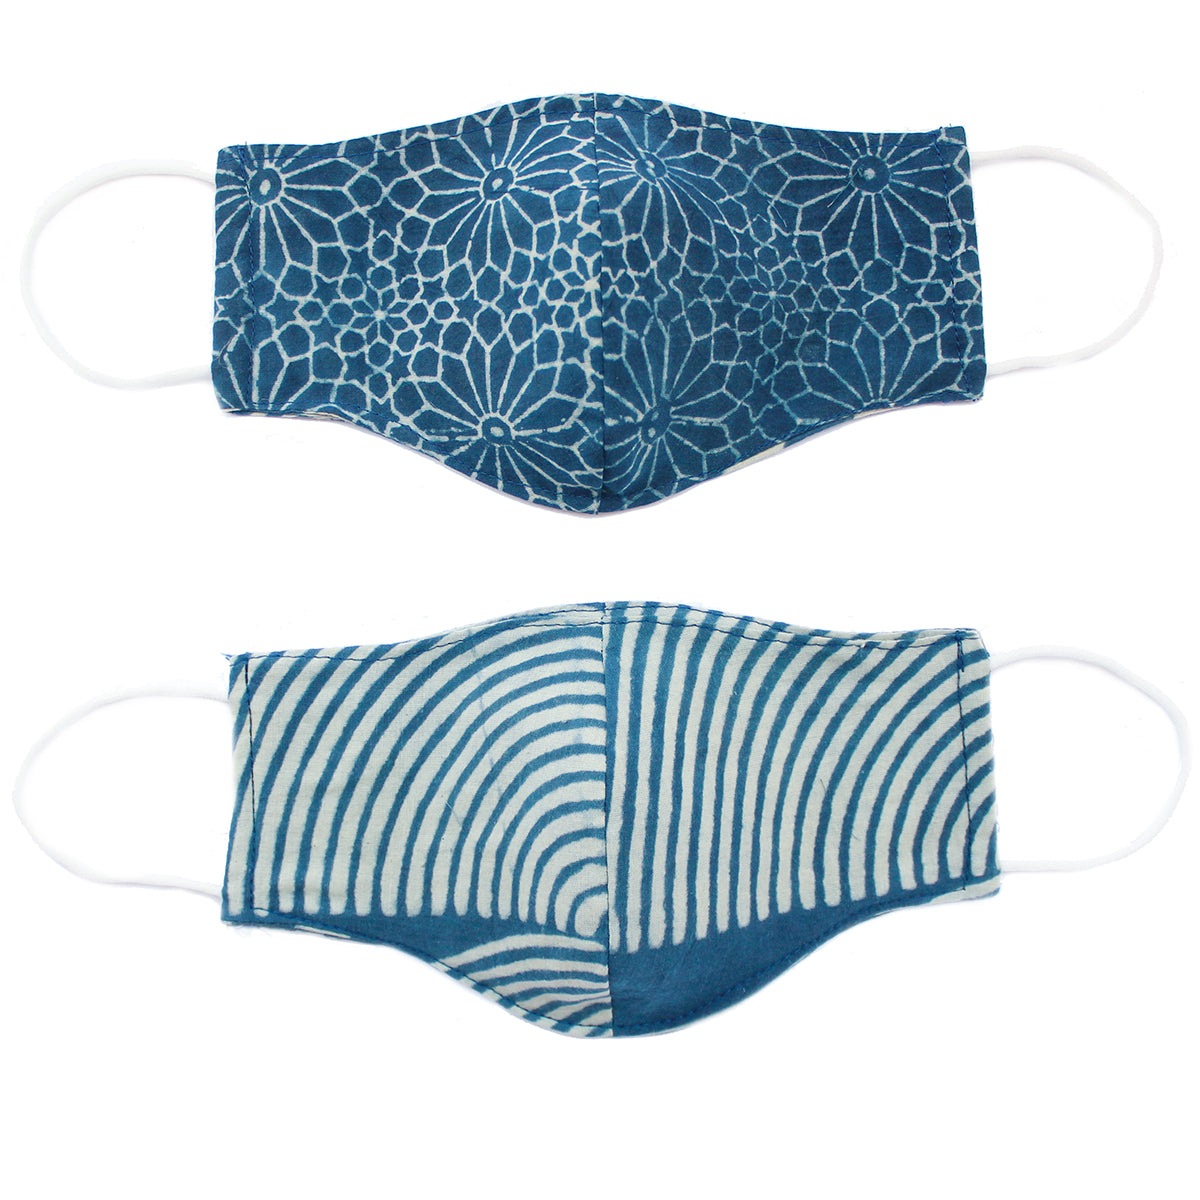 double sided hand block printed facemask by Mata Quilts in an indigo and white wifi design